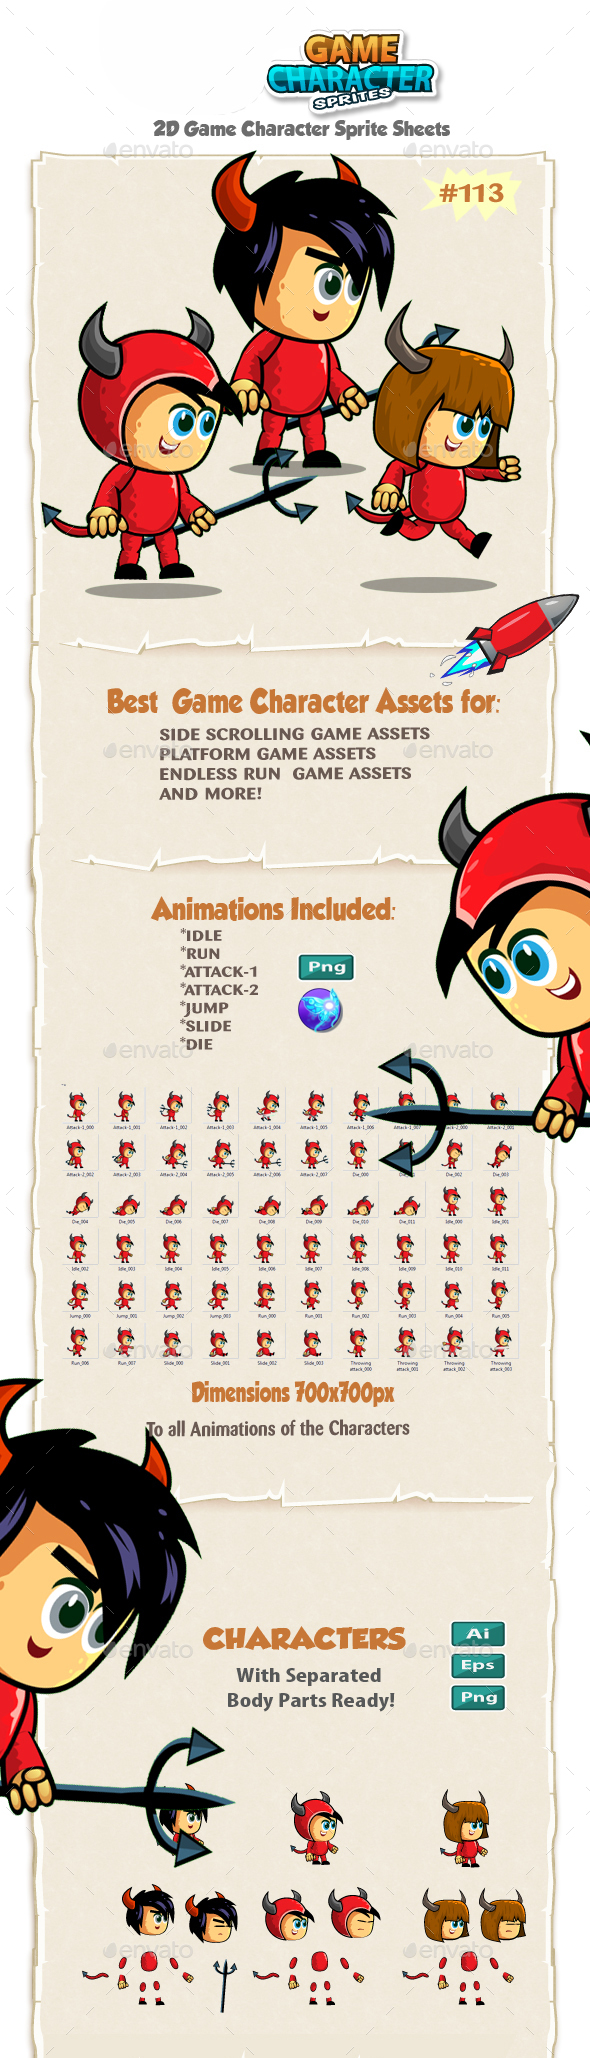 Vikings 2D Game Character Sprites 112 - Sprites Game Assets